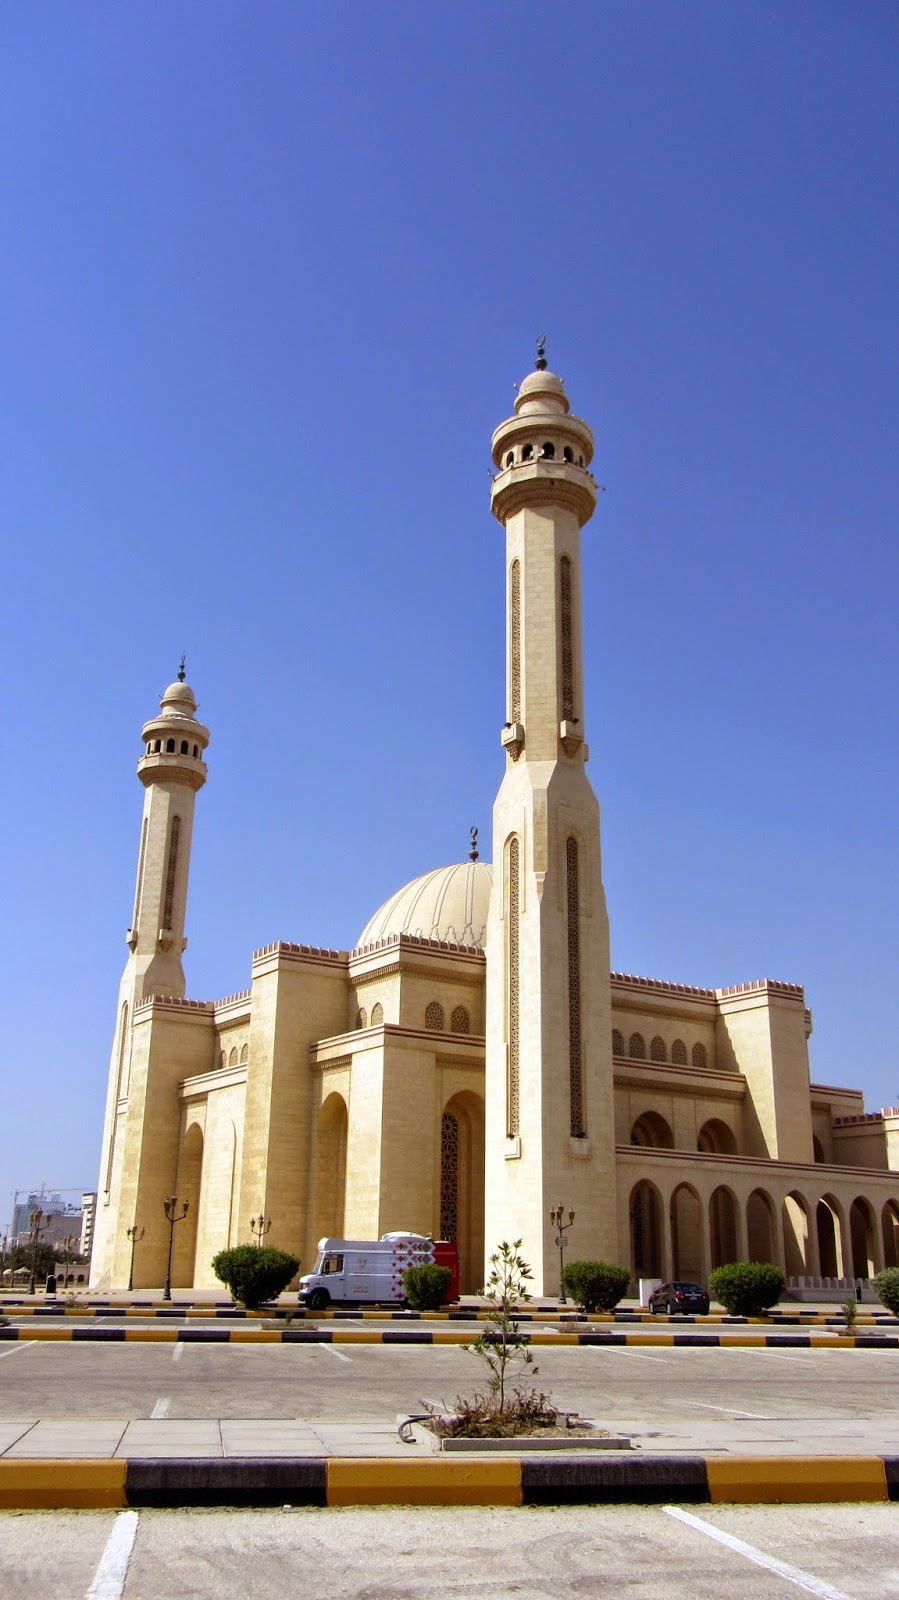 Al Fateh Grand Mosque Bahrain Pop Culture Middle East blog